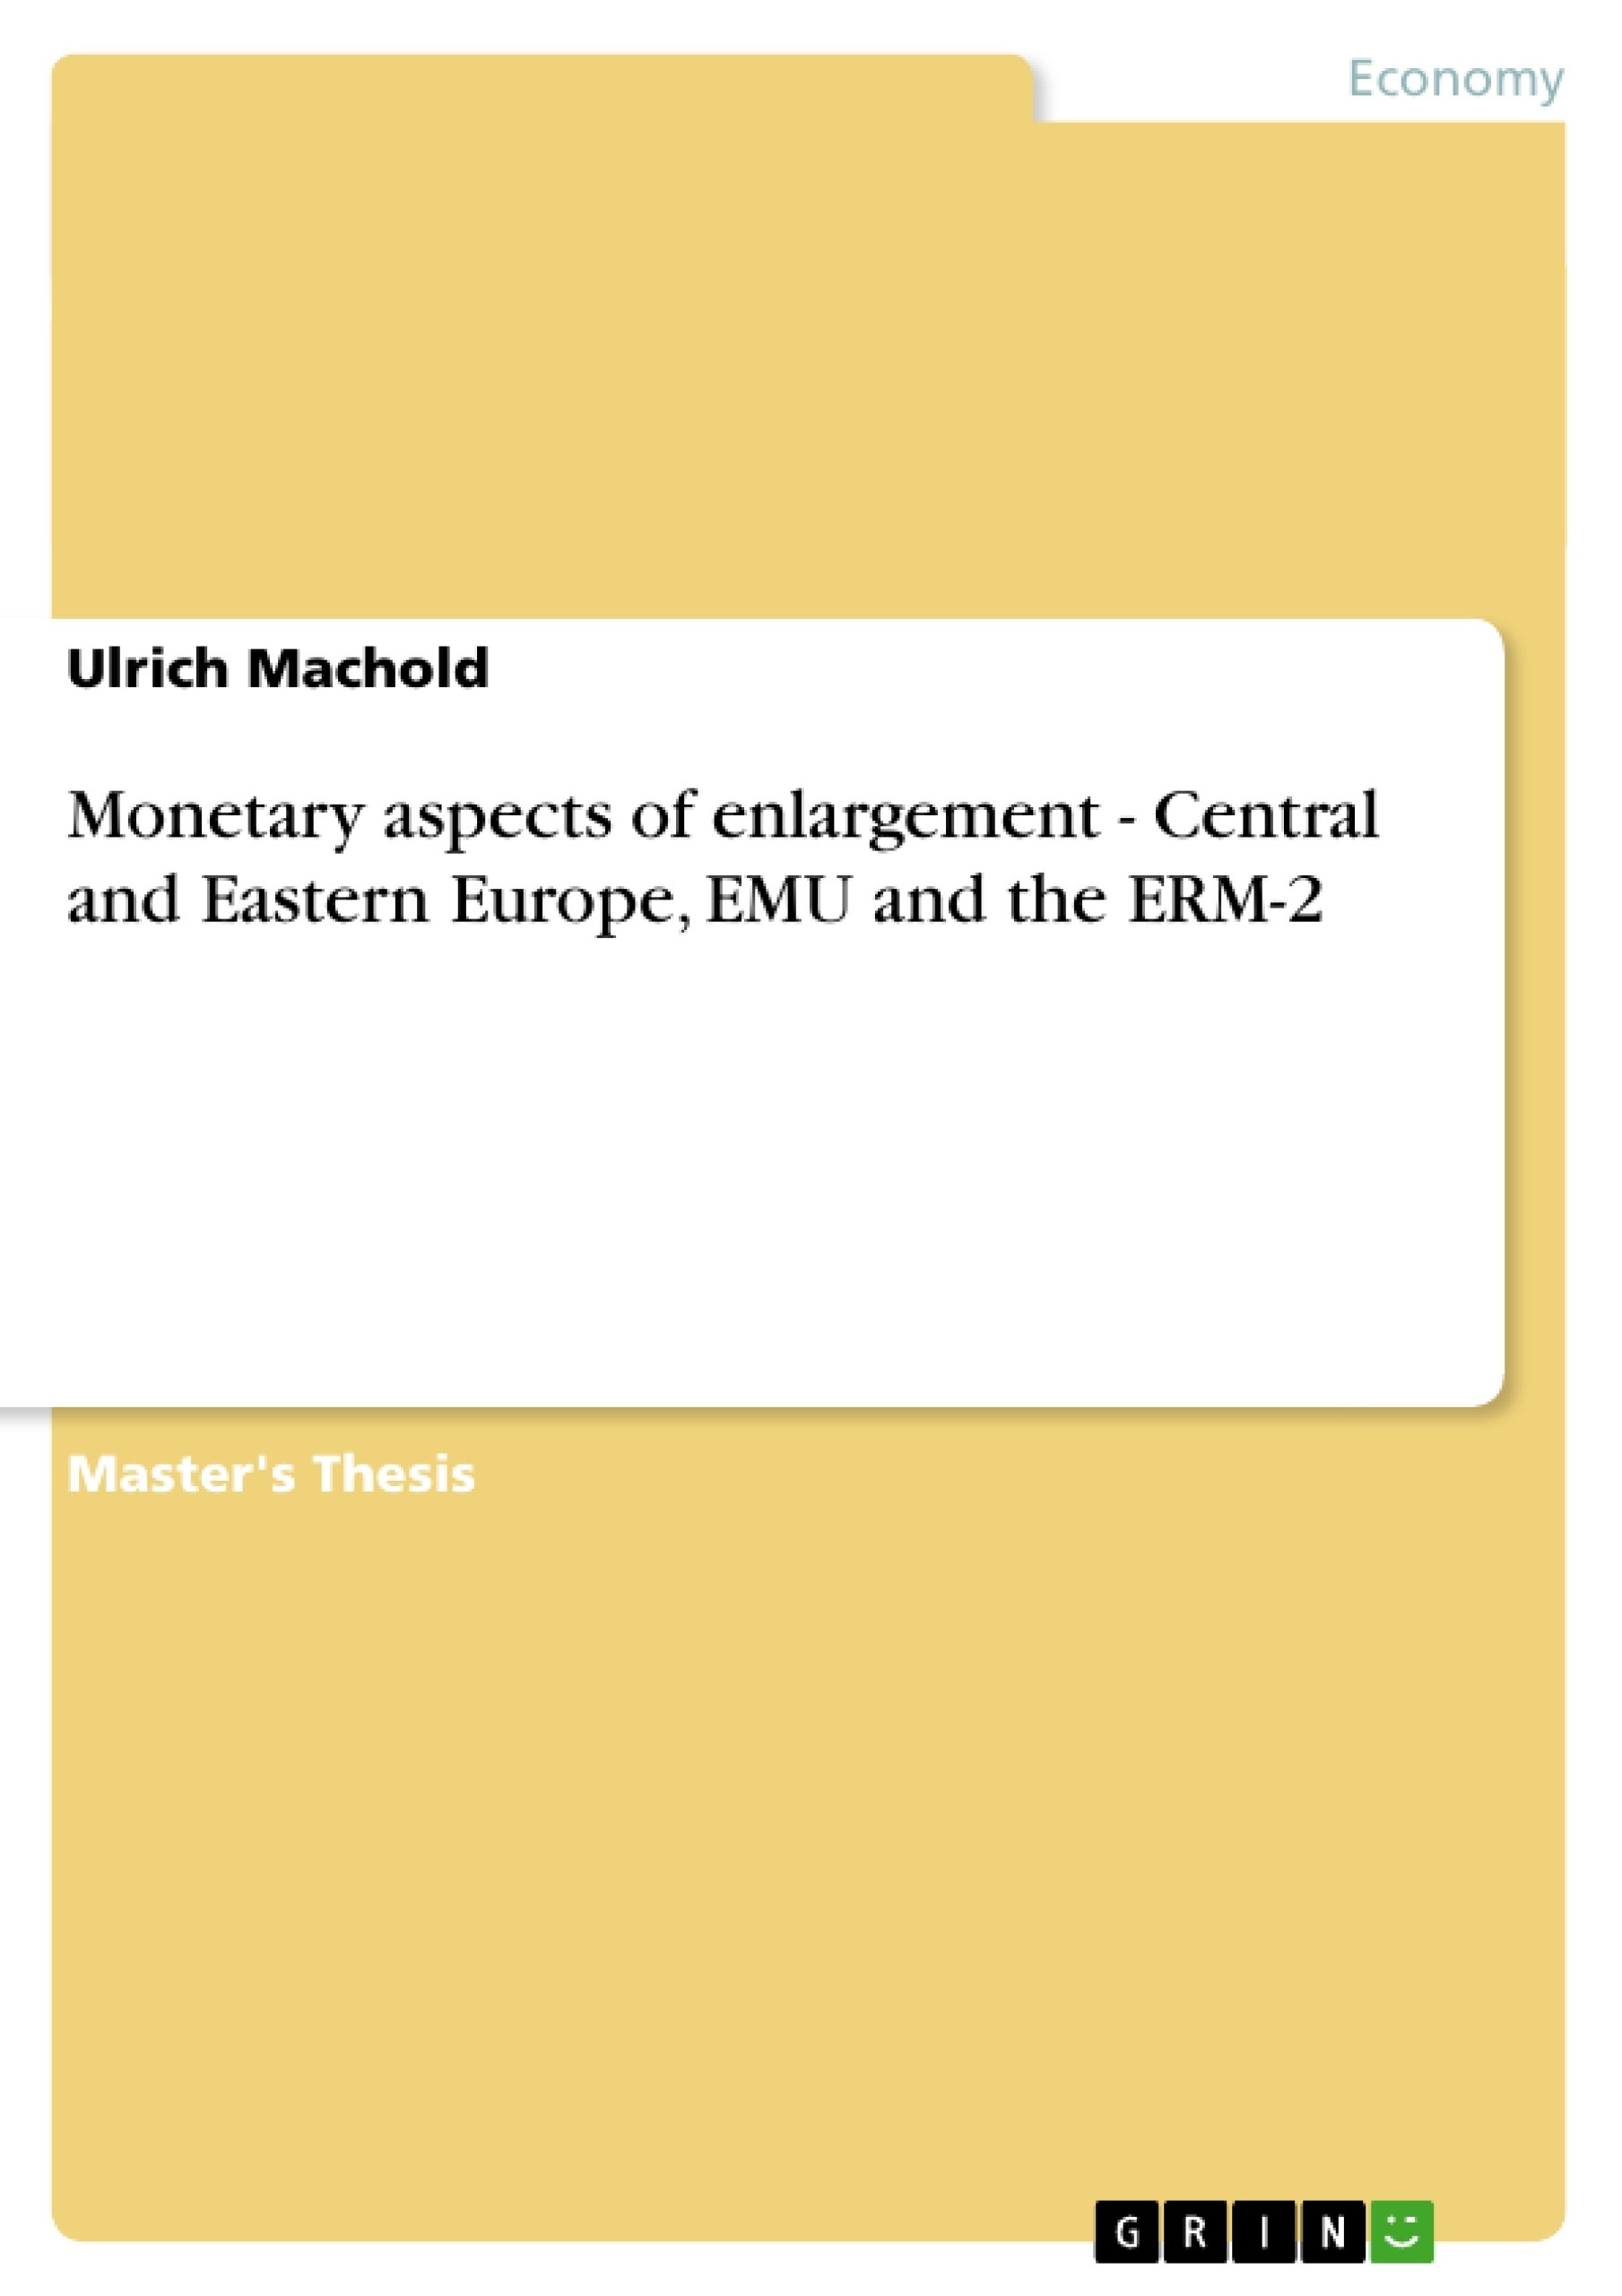 Title: Monetary aspects of enlargement - Central and Eastern Europe, EMU and the ERM-2